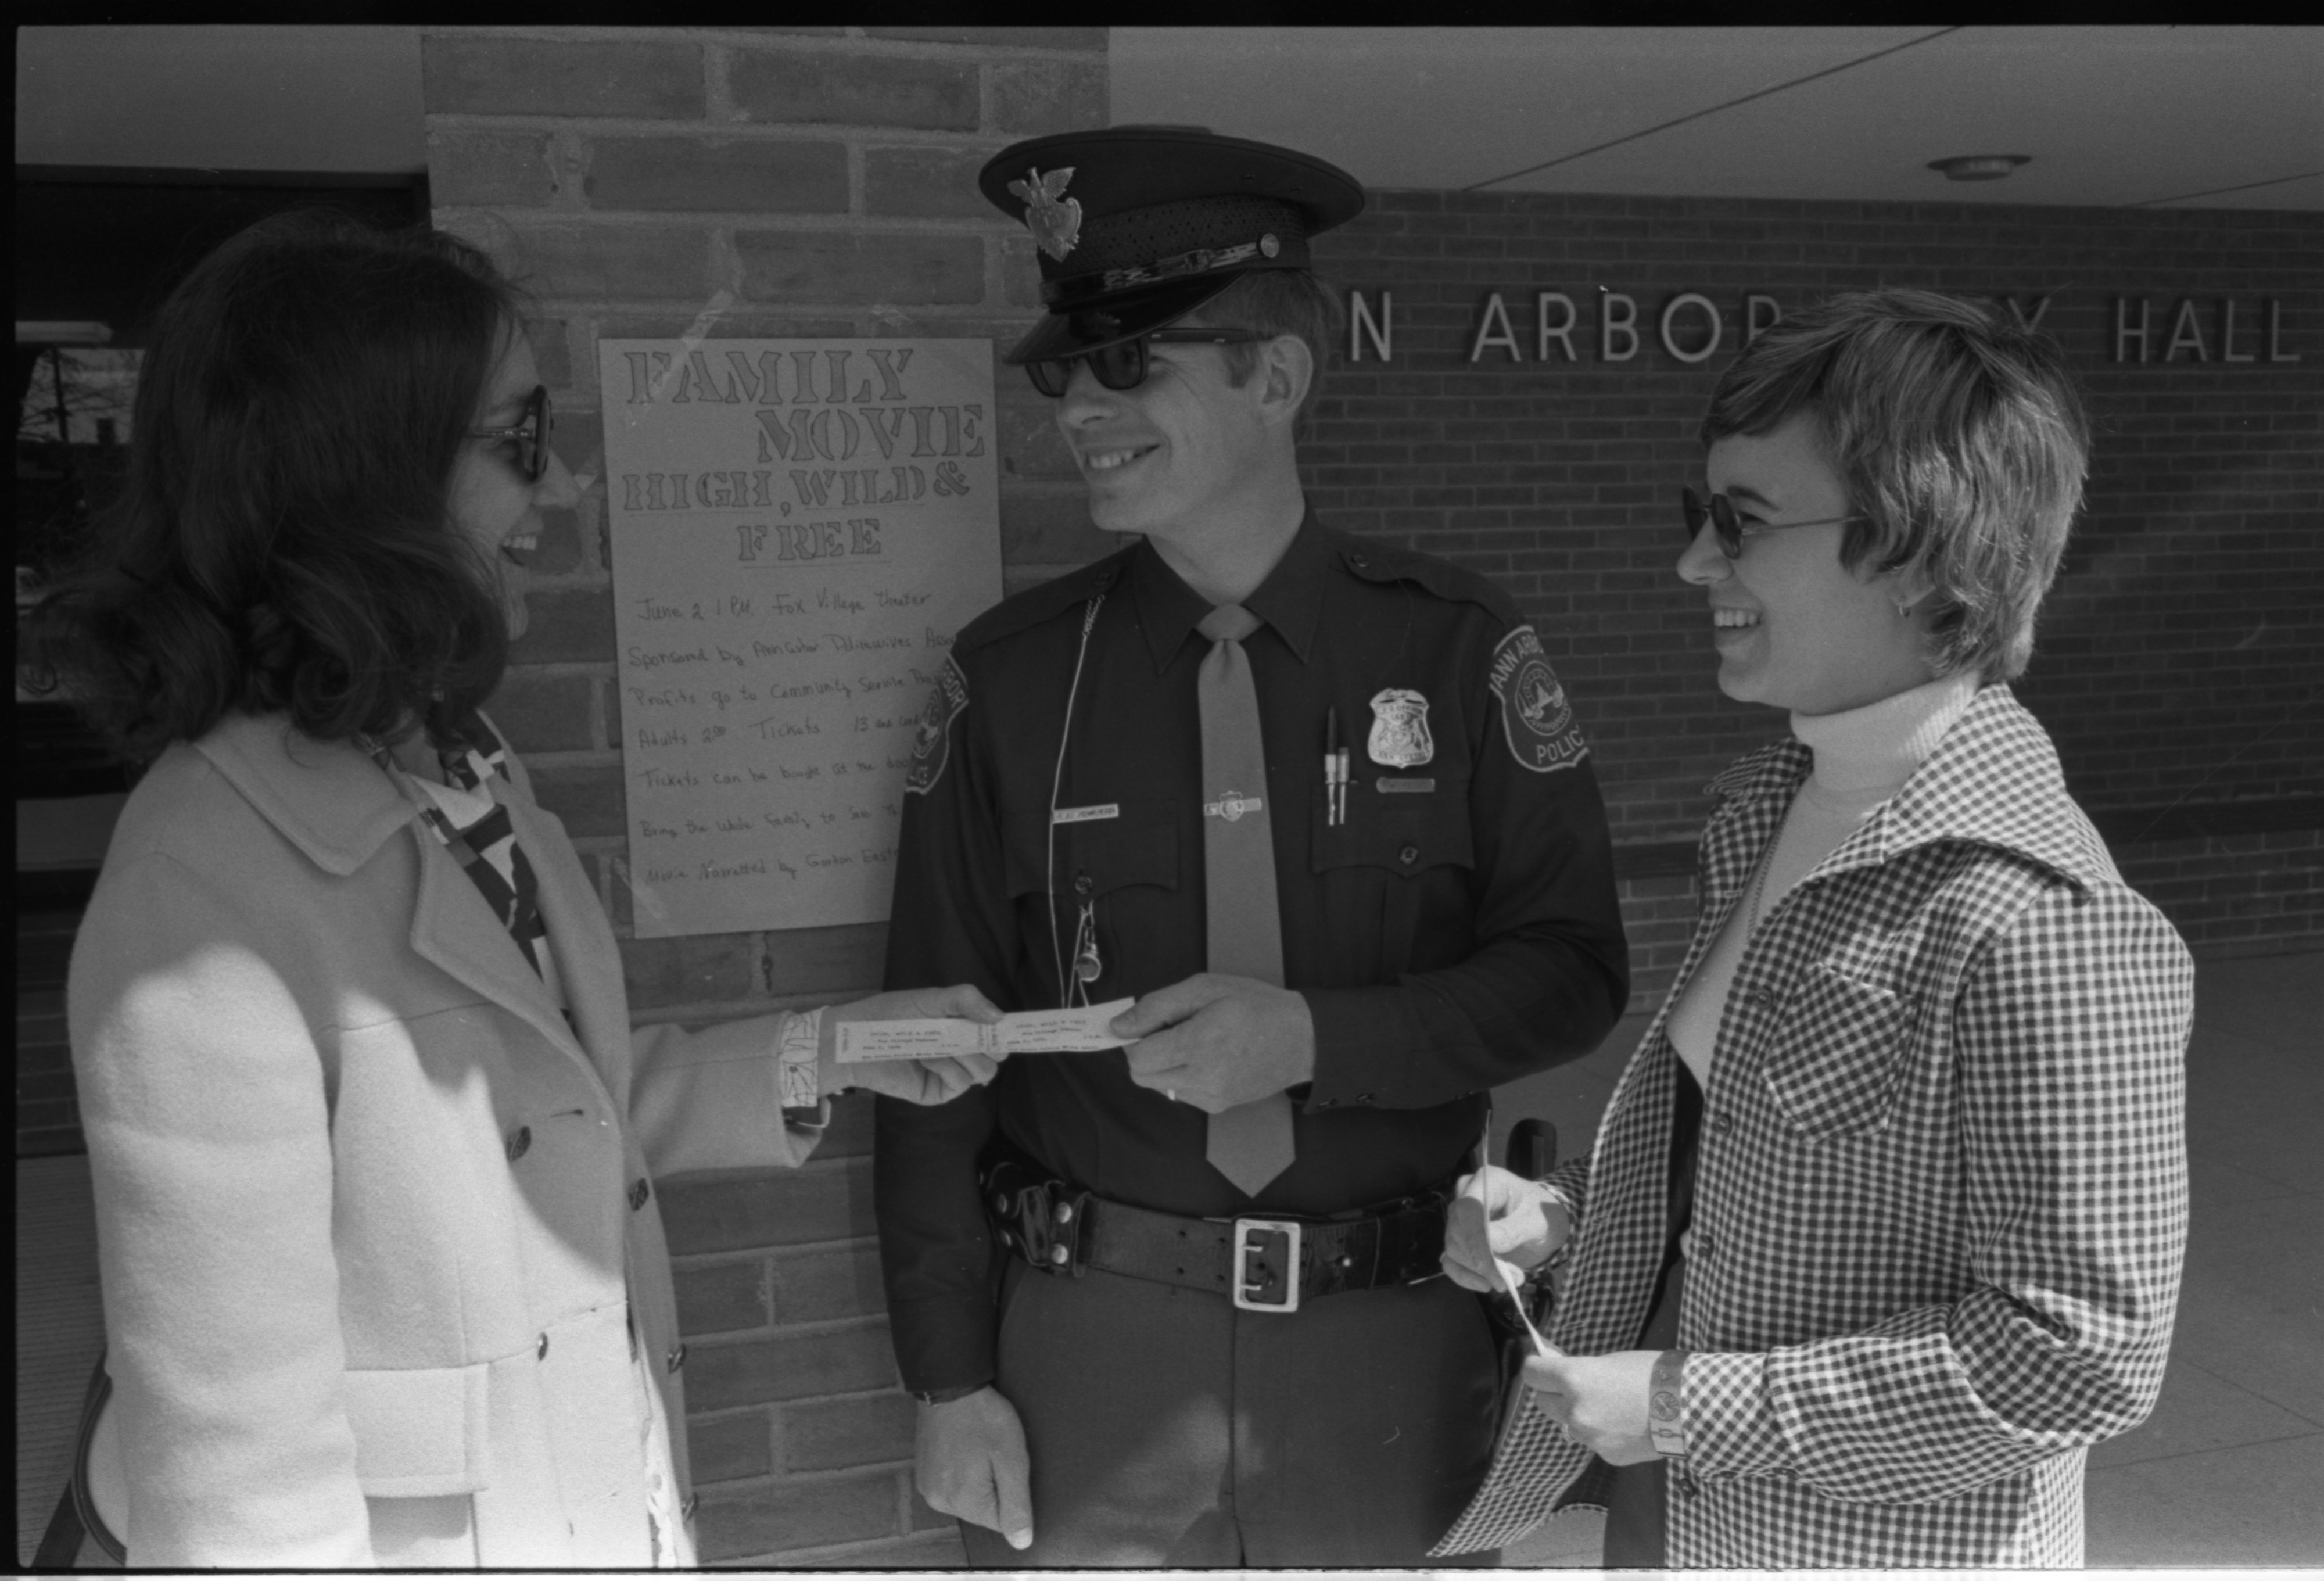 Ann Arbor Police Wives Association Sells Movie Tickets to Patrolman Harry Jinkerson, May 1974 image